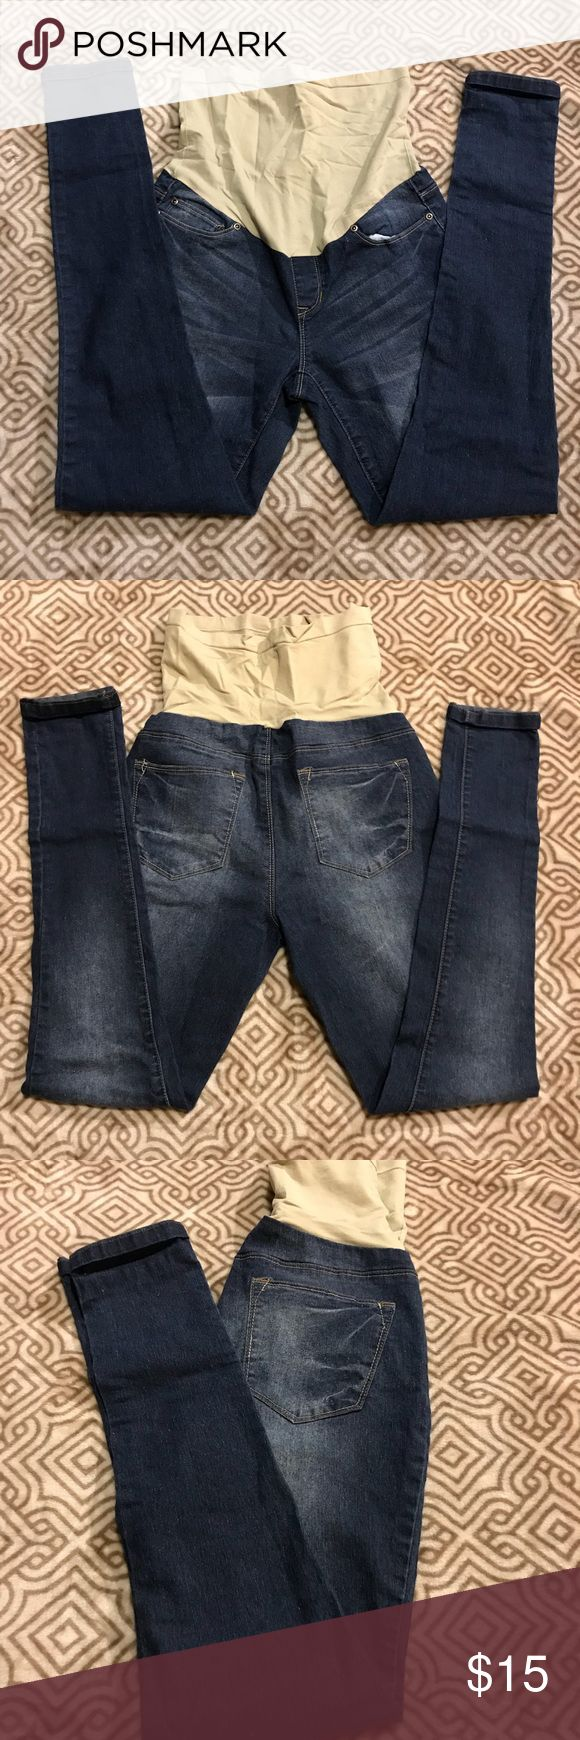 Maternity Jean Up for sale is a maternity jean from Planet Motherhood   Size: Small Planet Motherhood Jeans Straight Leg